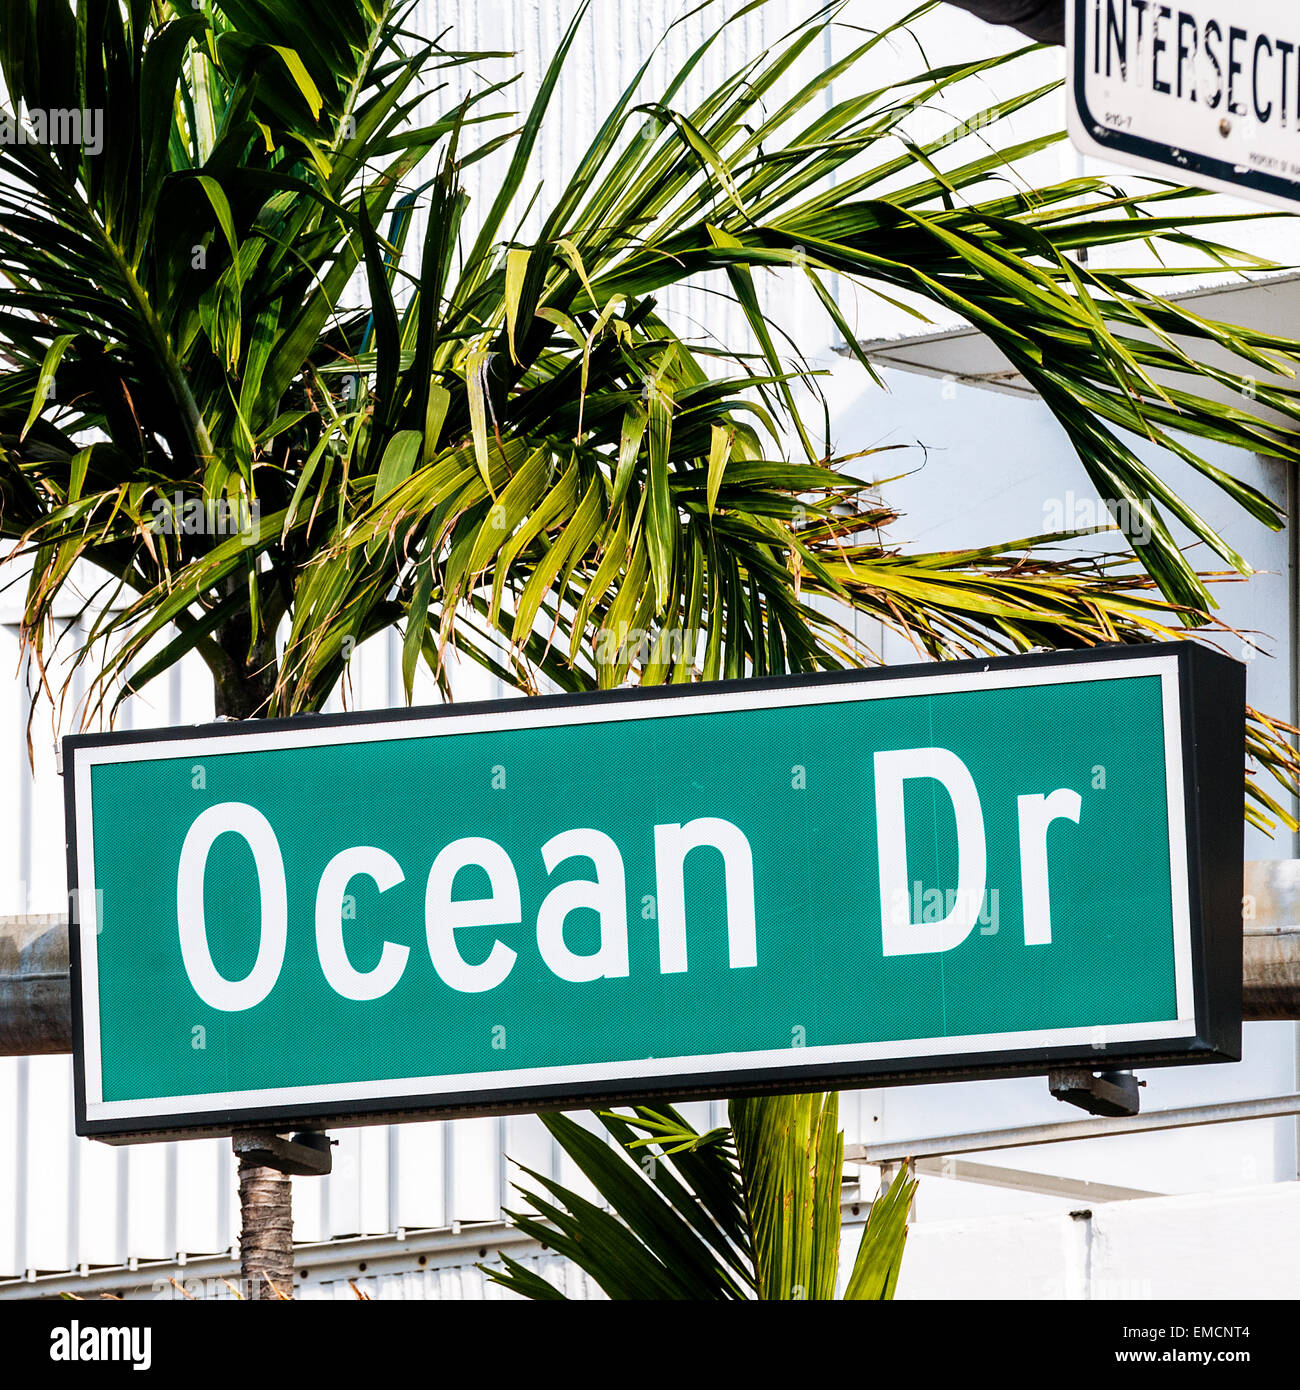 street sign of famous street Ocean Drive - Stock Image